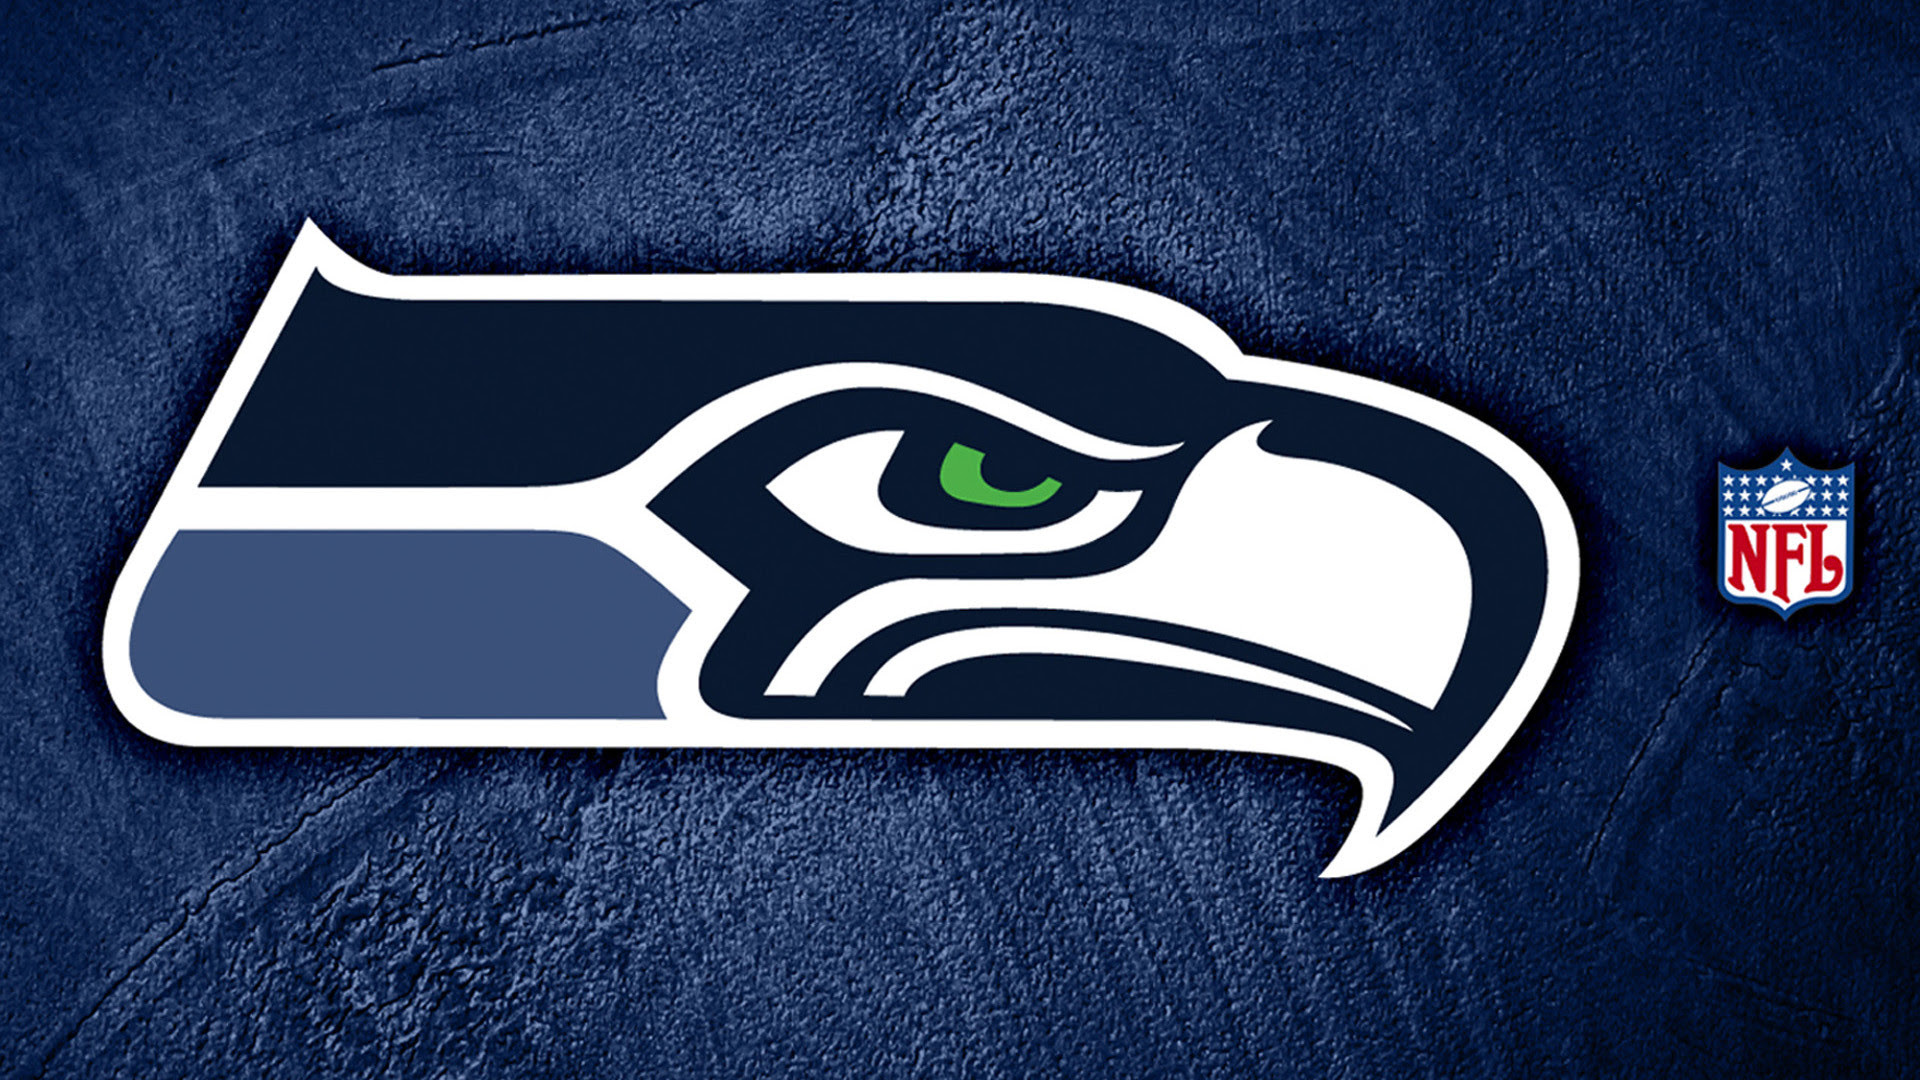 Seahawks Wallpapers 1920x1080 80 Images